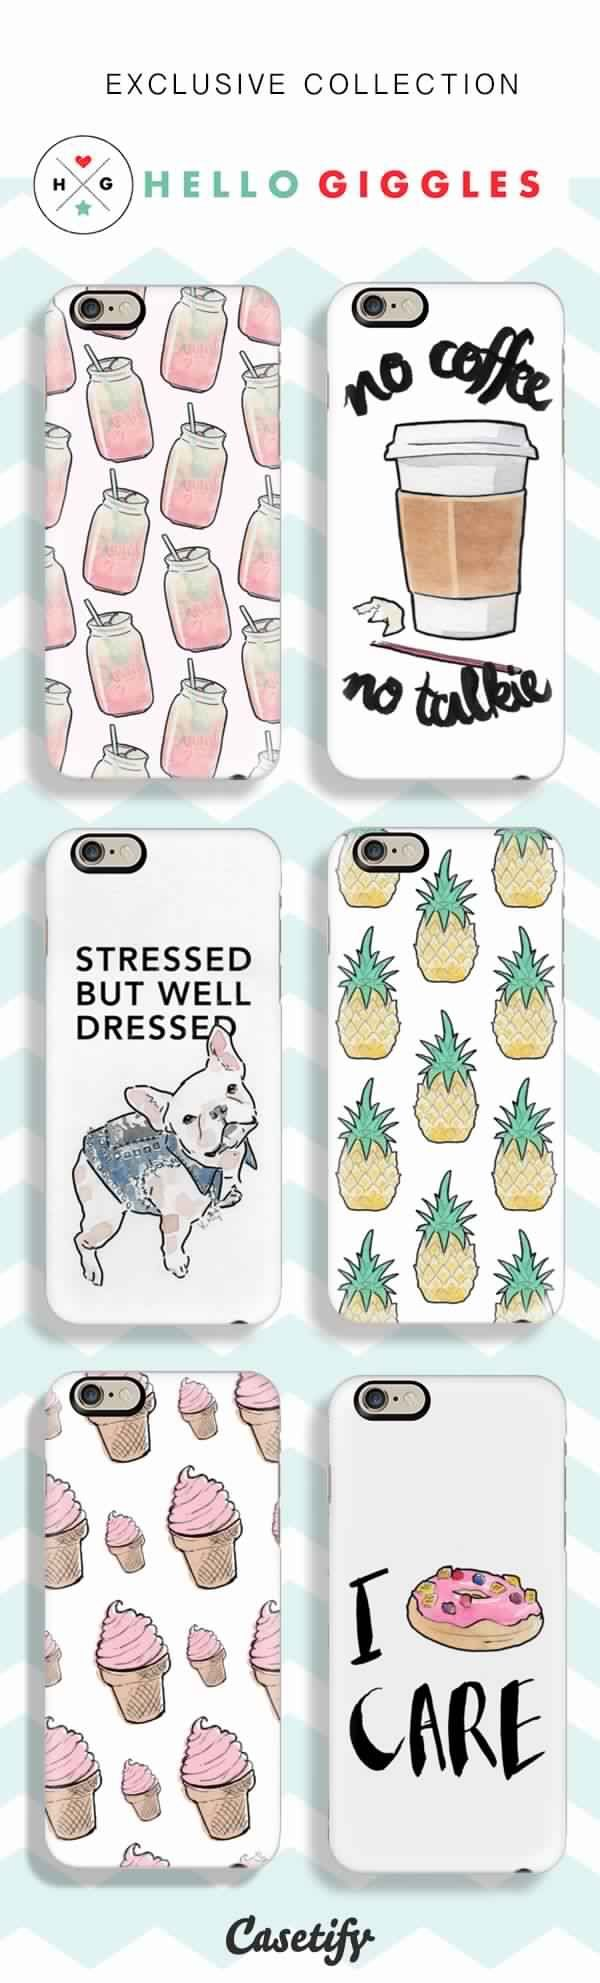 Follow OfficiallyMe29 for more awesome Phone Case pins